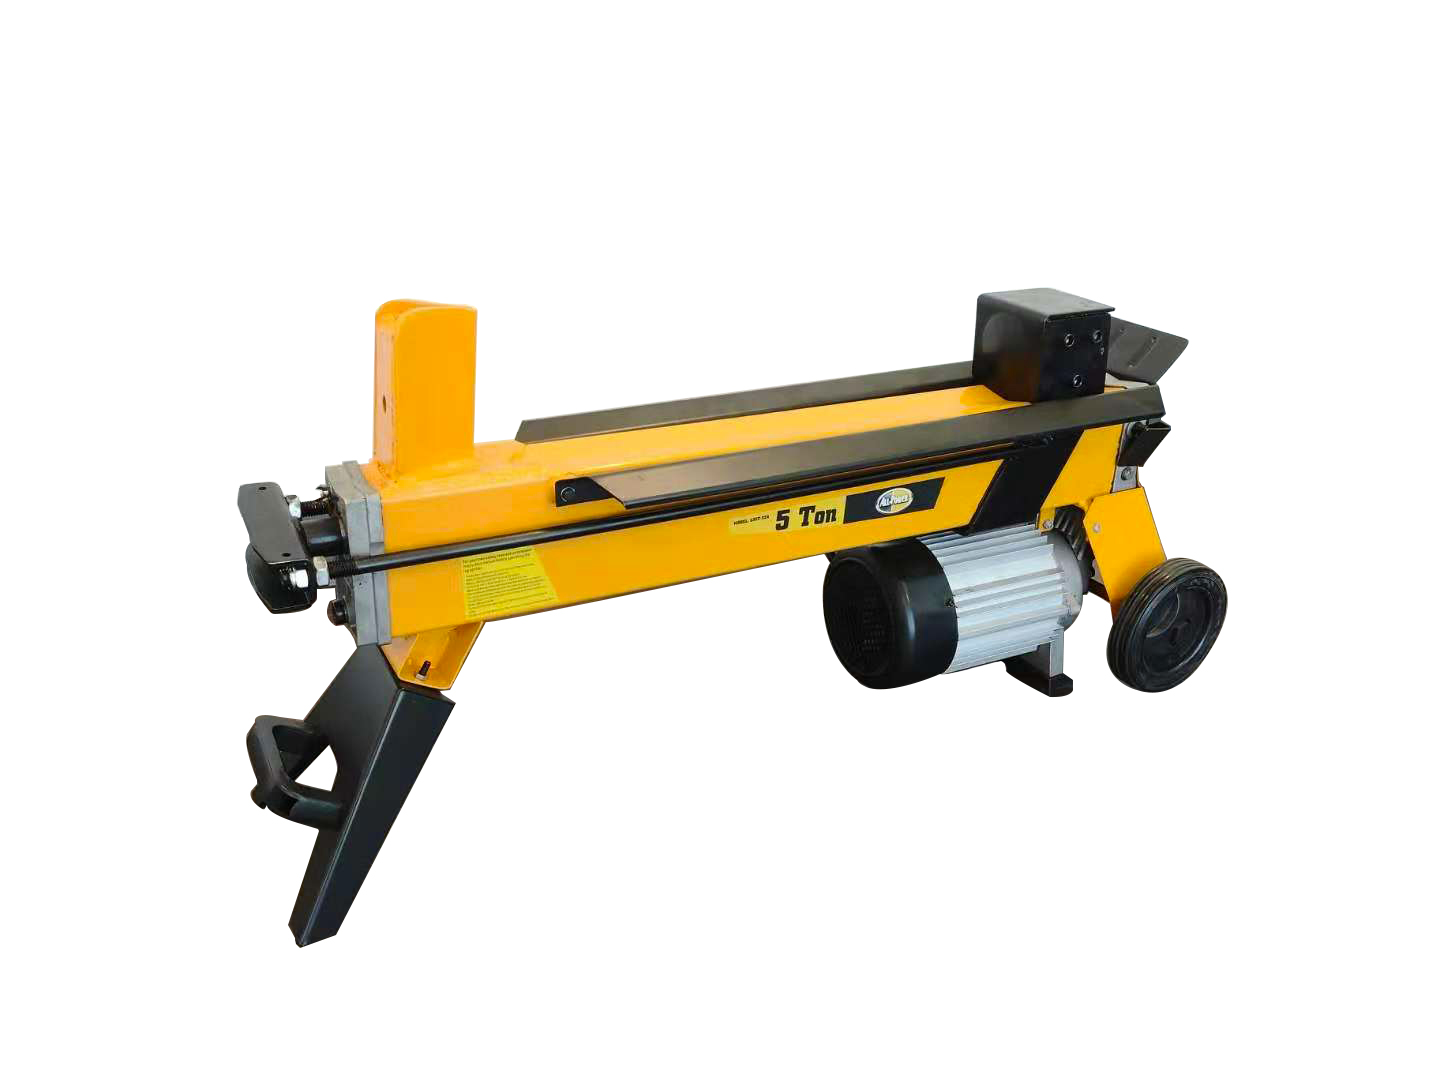 5 Ton Capacity Log Splitter